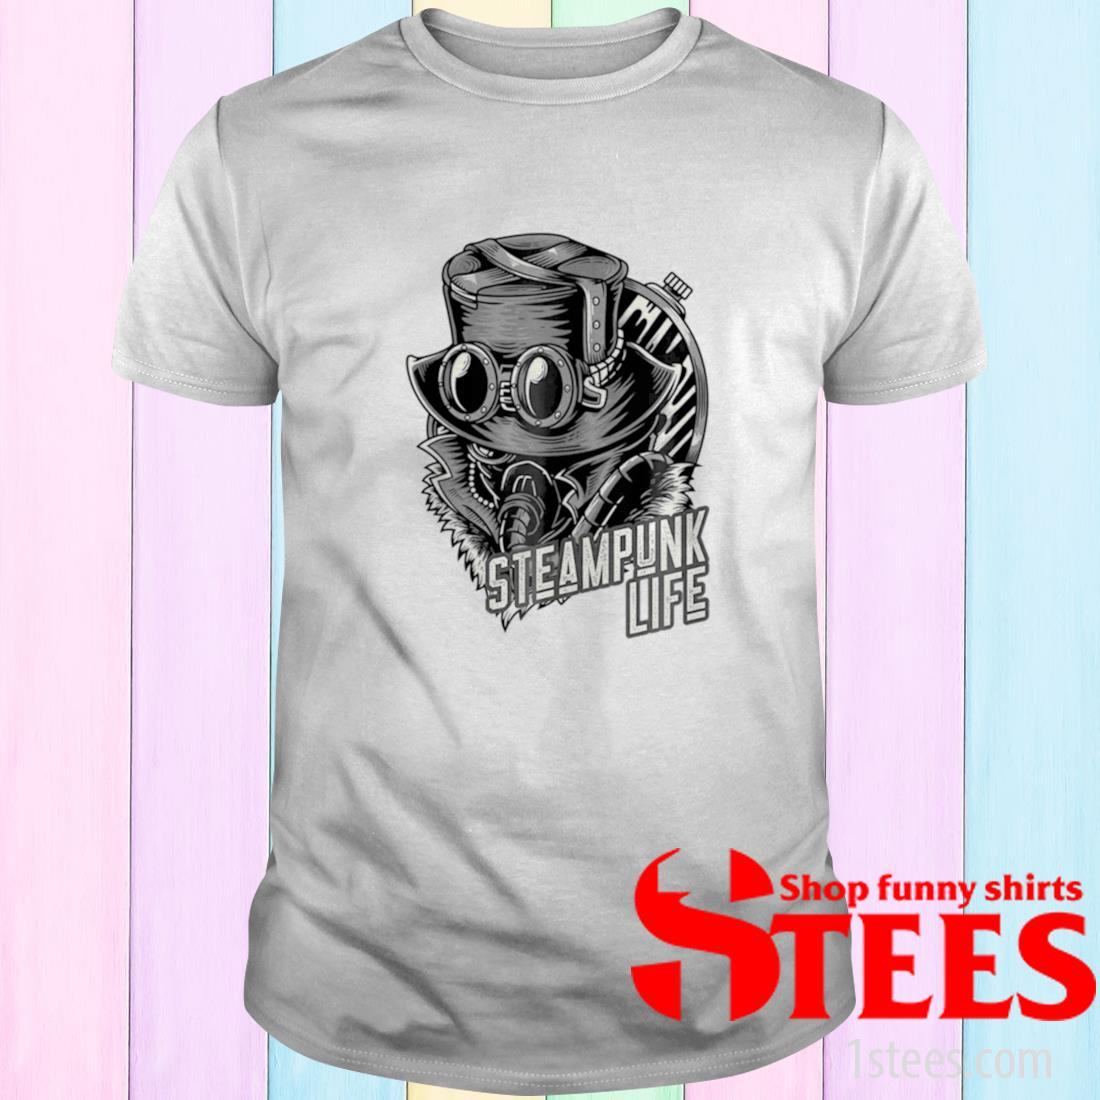 Steampunk Life Shirt